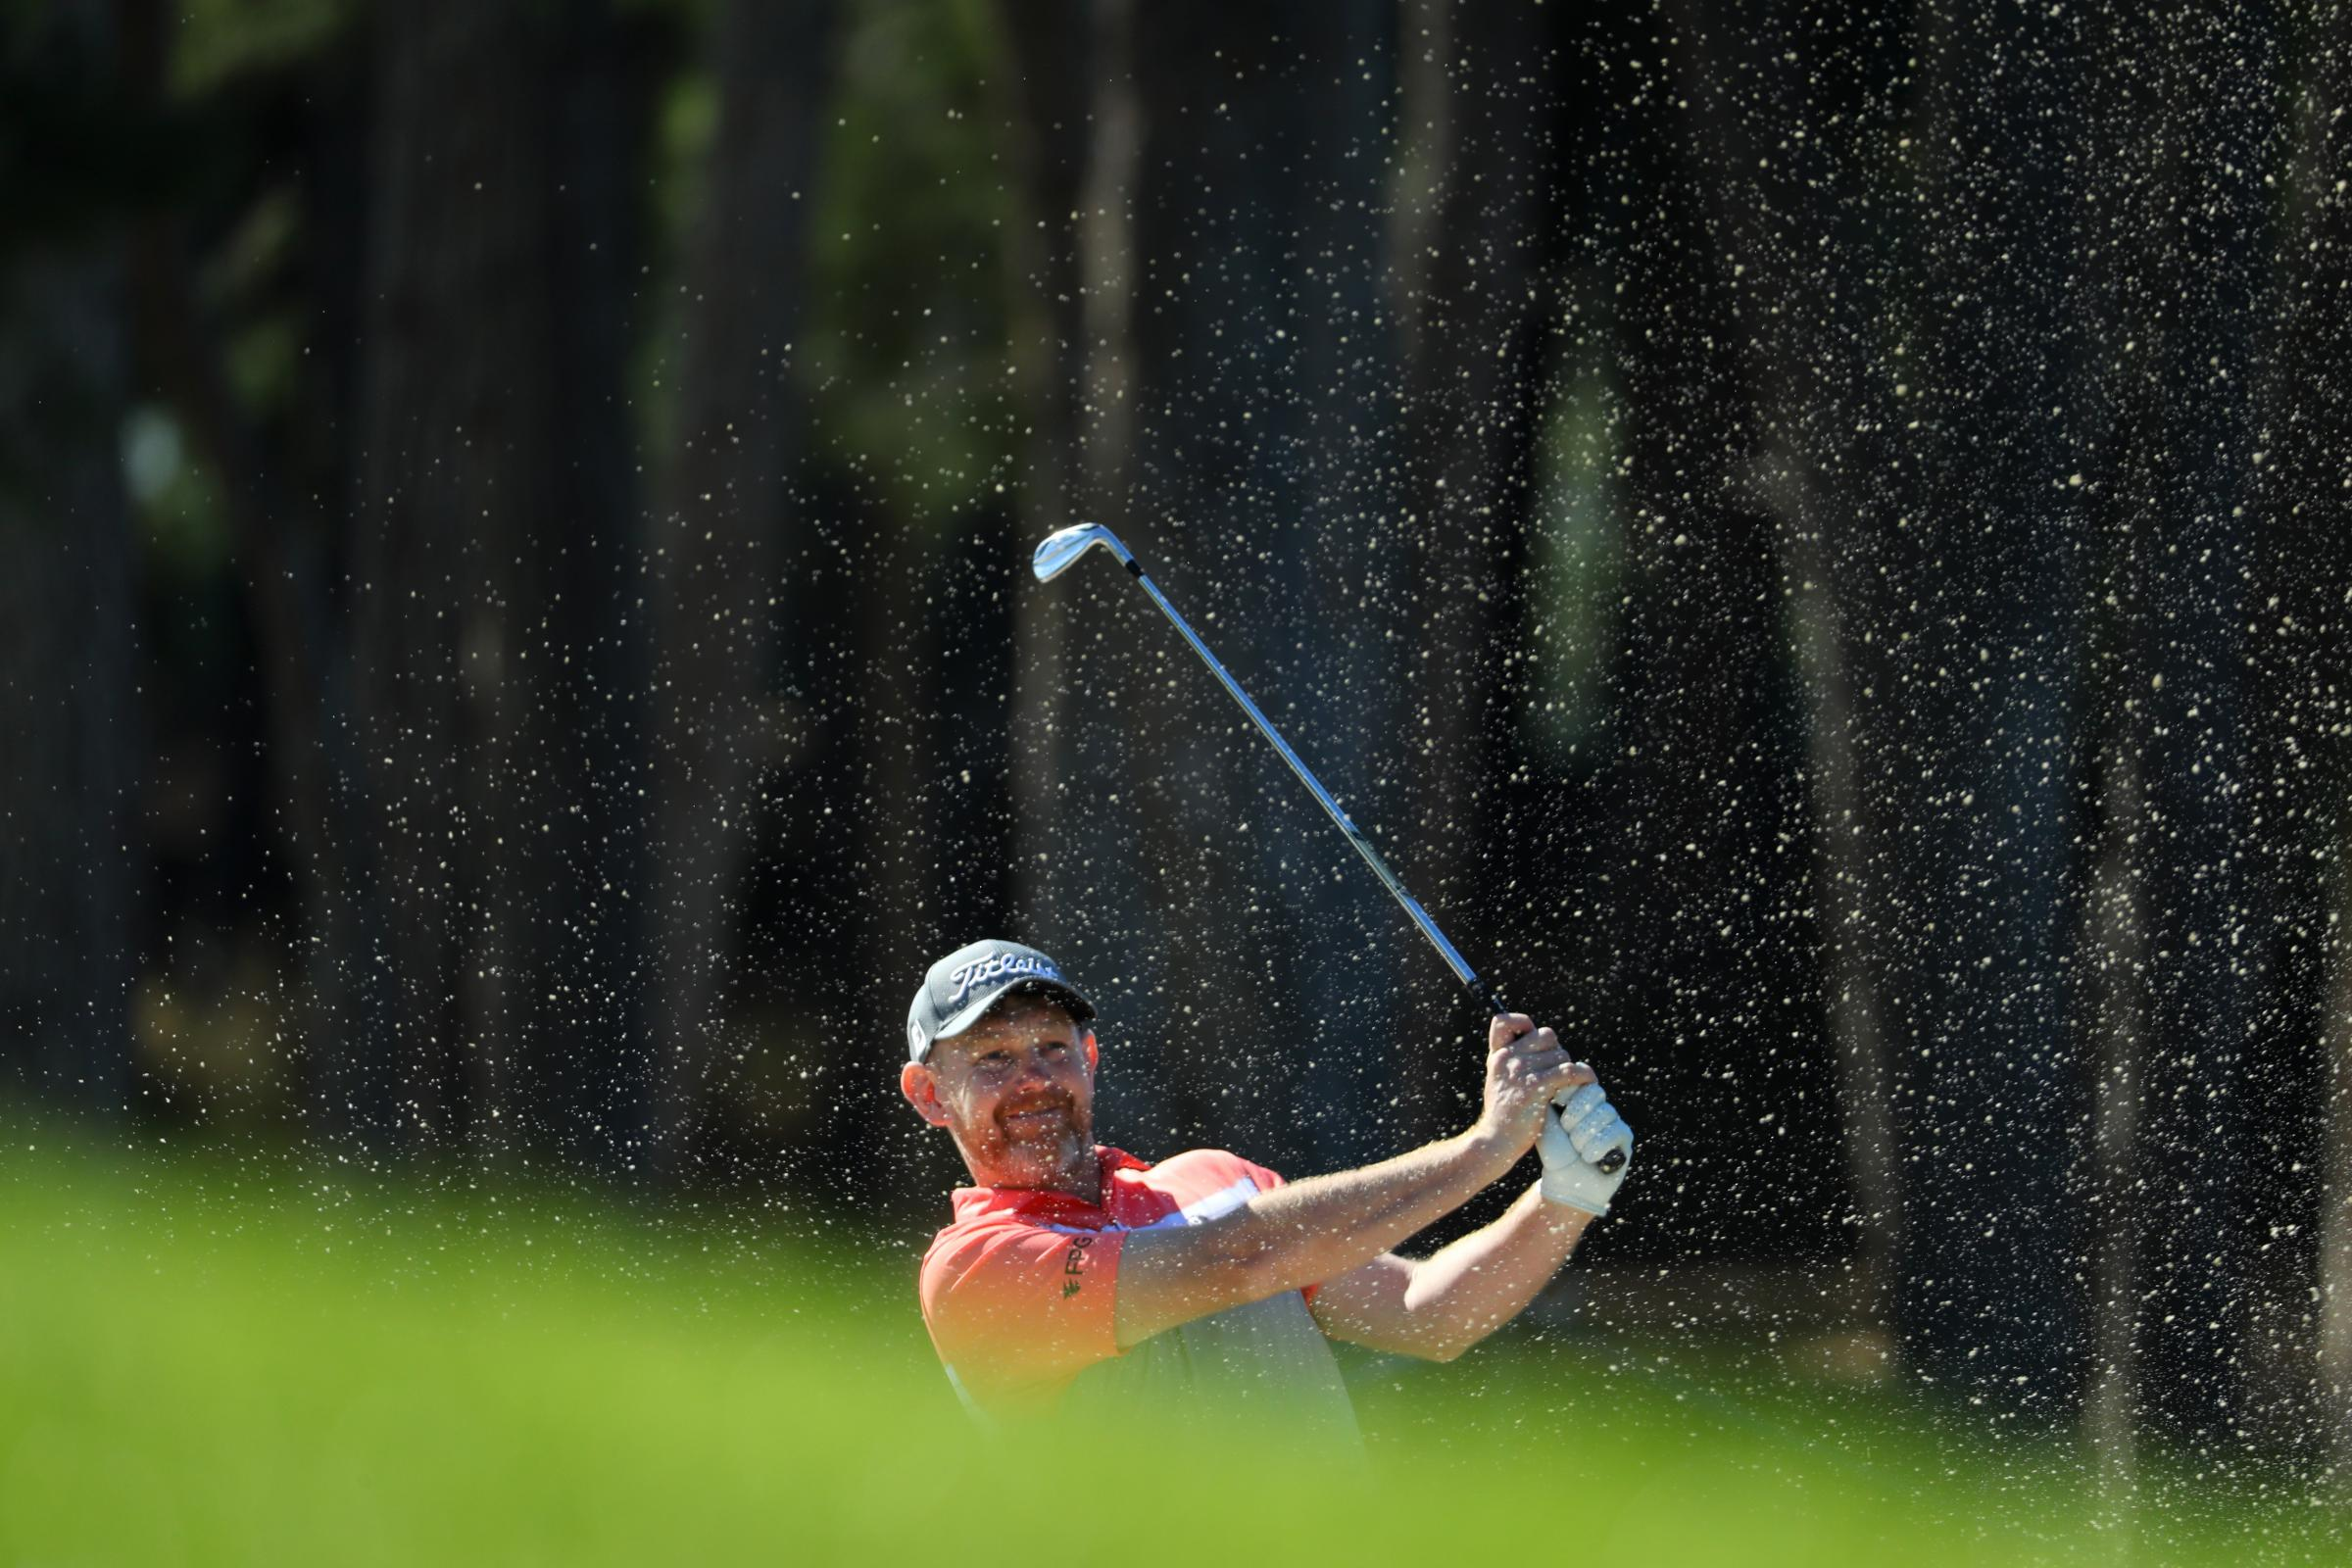 Going fourth: Stephen Gallacher moved into a share of fourth in the Turkish Airlines Open (Picture: Getty)